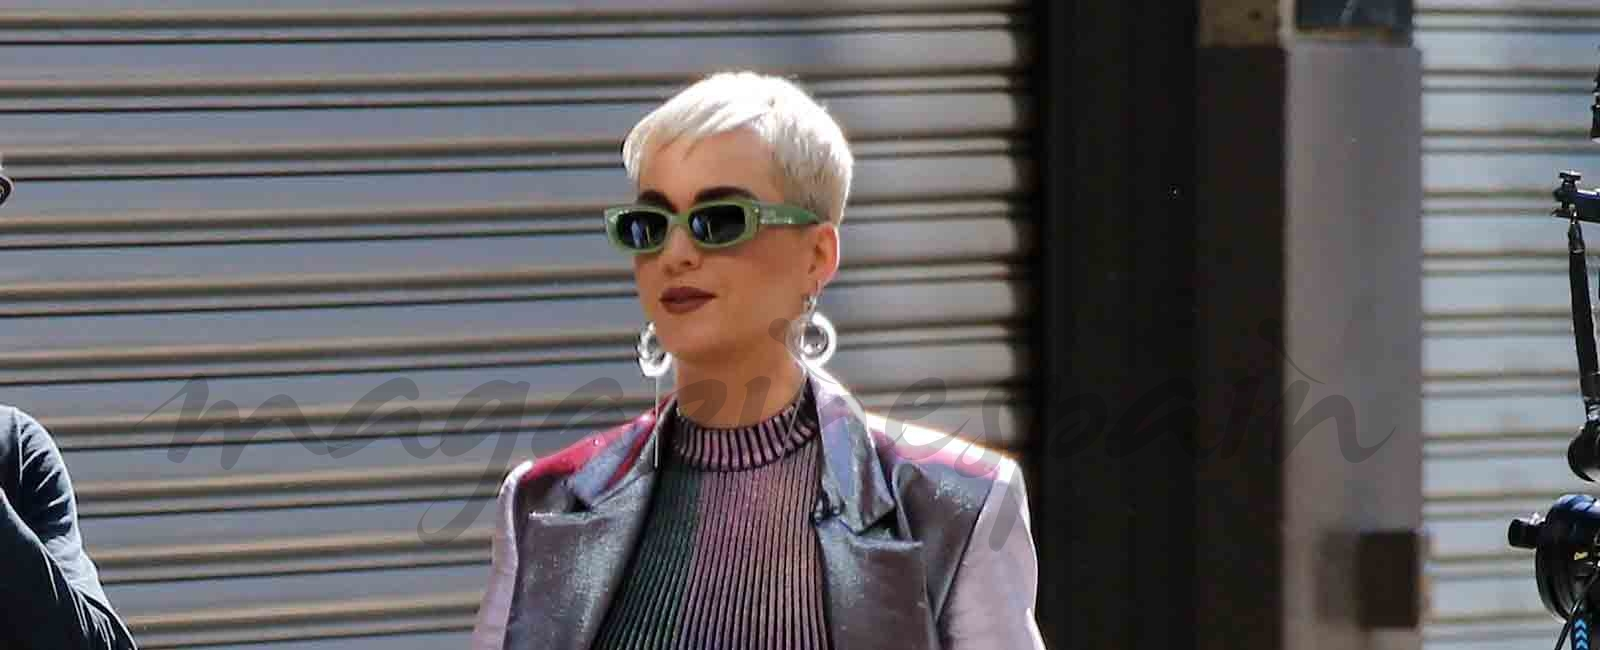 El look futurista de Katy Perry